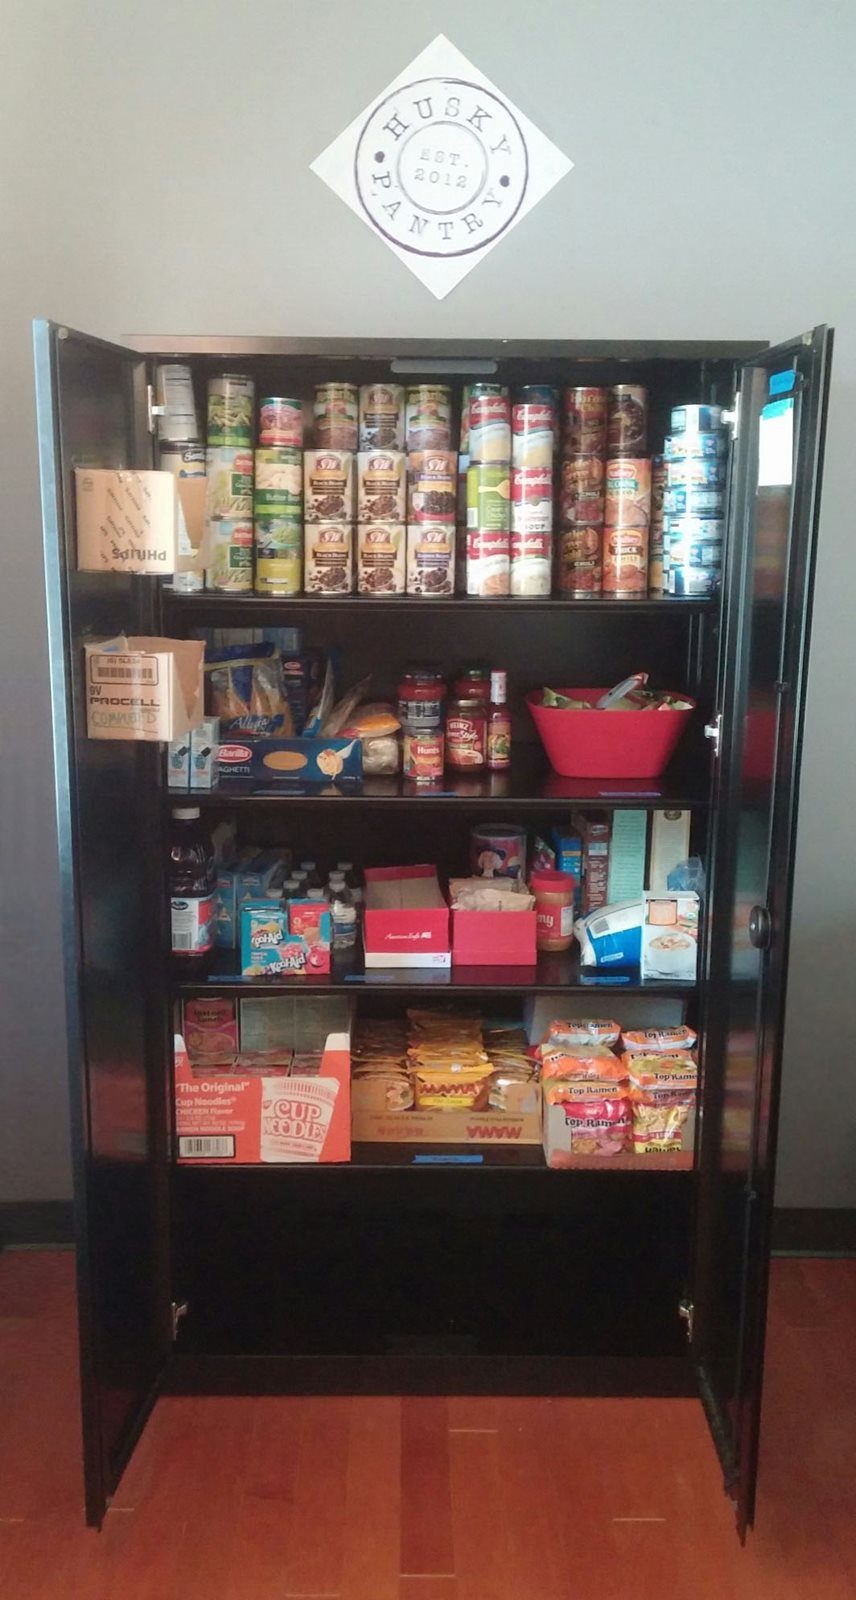 Husky pantry shelves